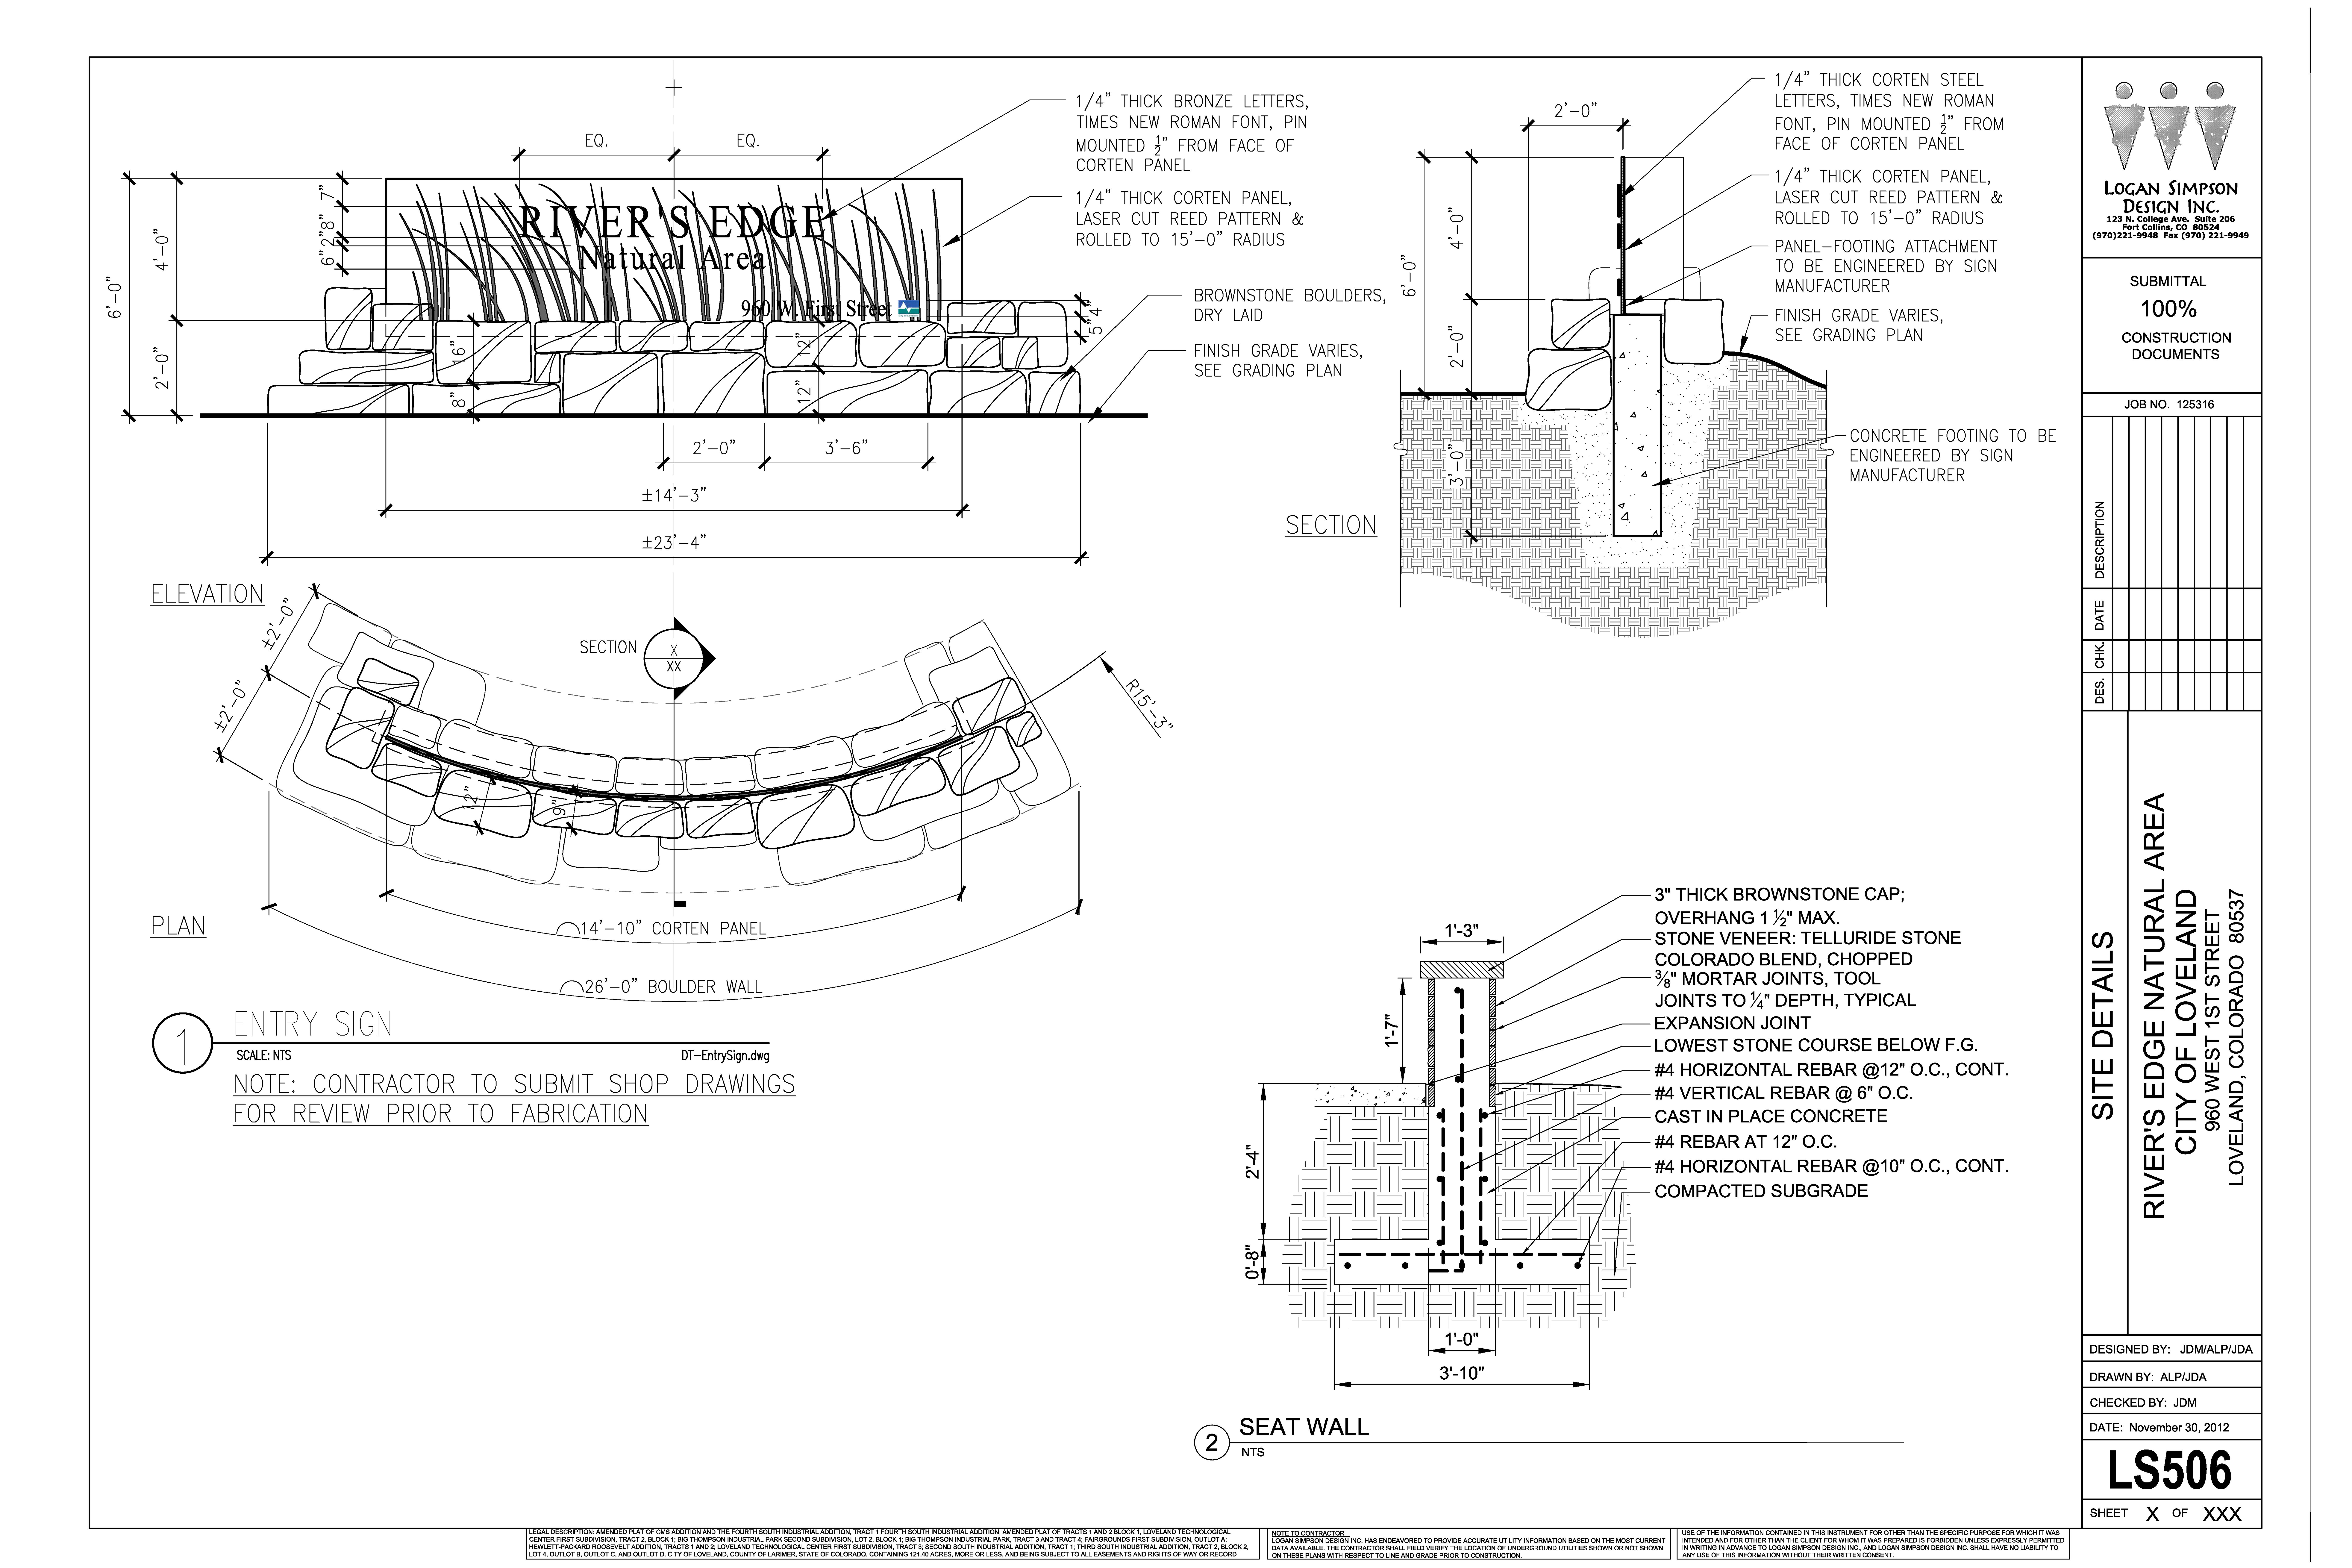 Entry sign construction documents